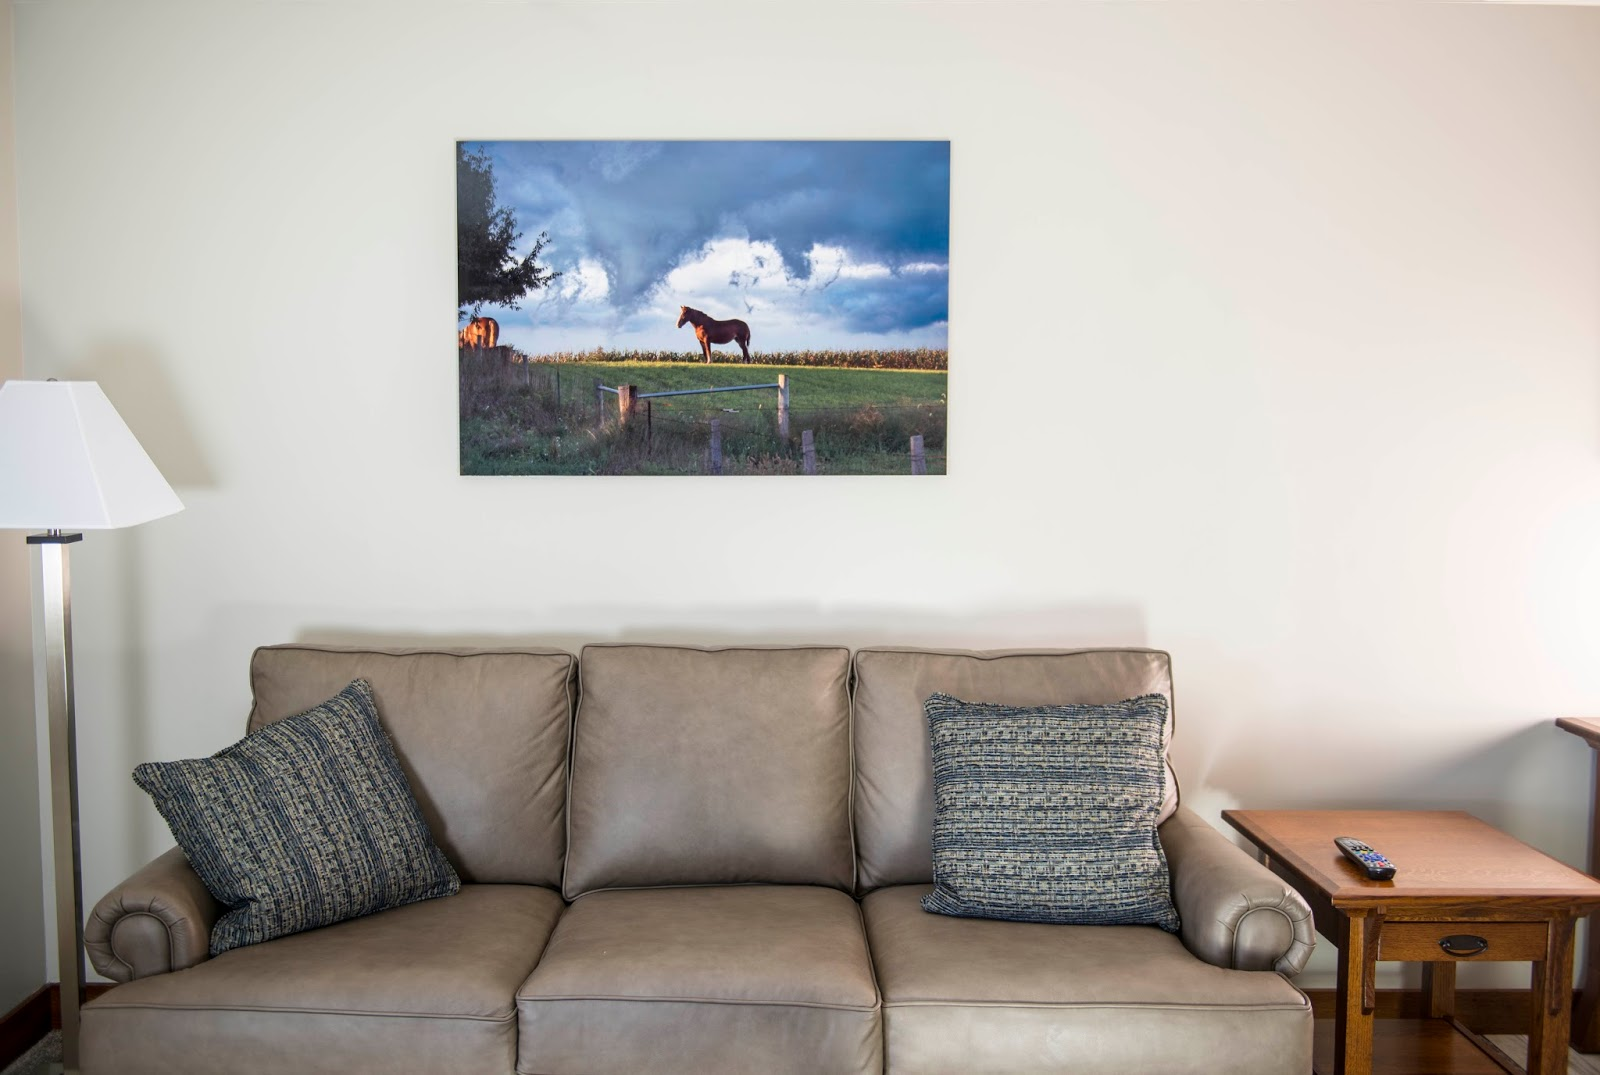 The Luxury Suite At The Blue Gate Garden Inn, Shipshewana Has A Couple Of  Our Images Printed On Metal. Here Is One Hanging In The Living Room.